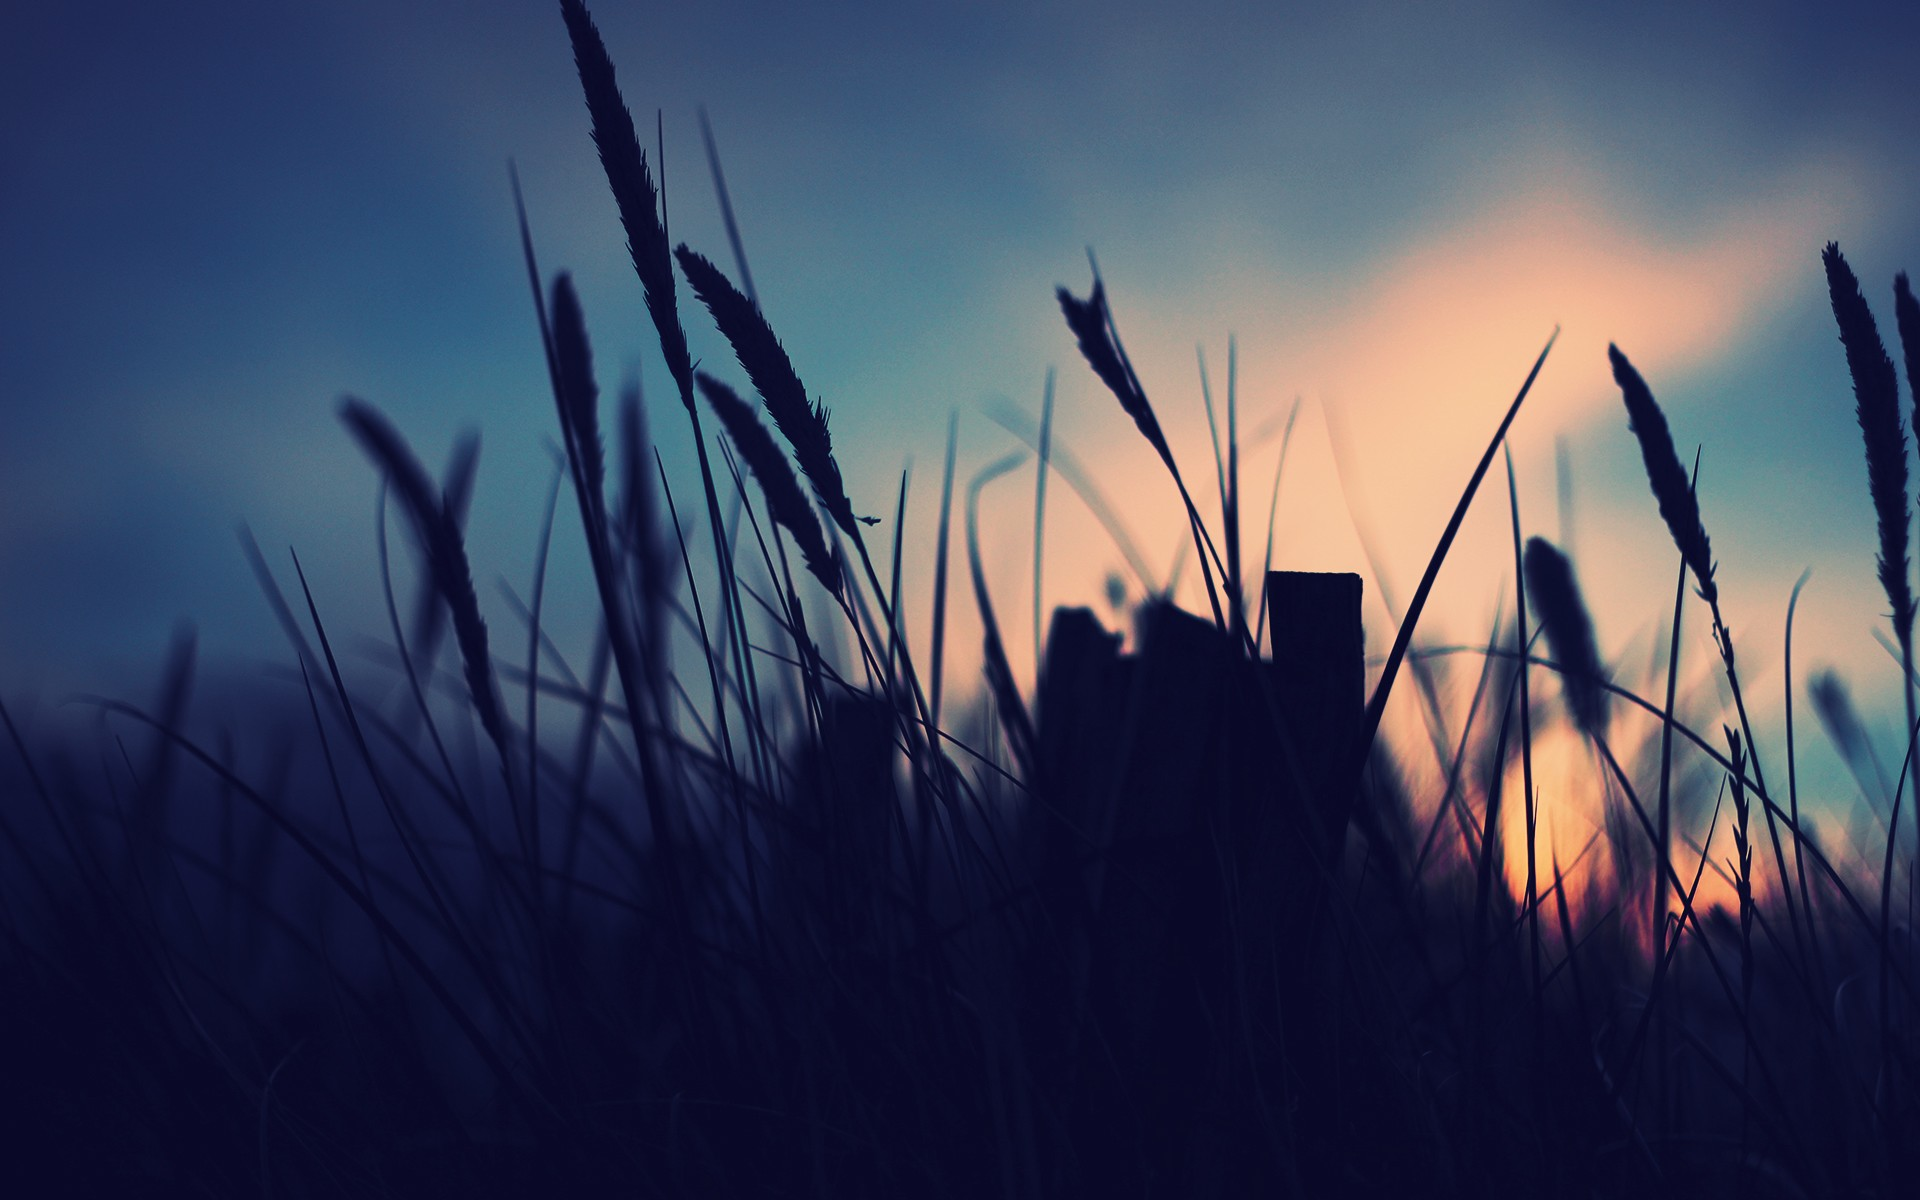 Grass, Sunset wallpaper